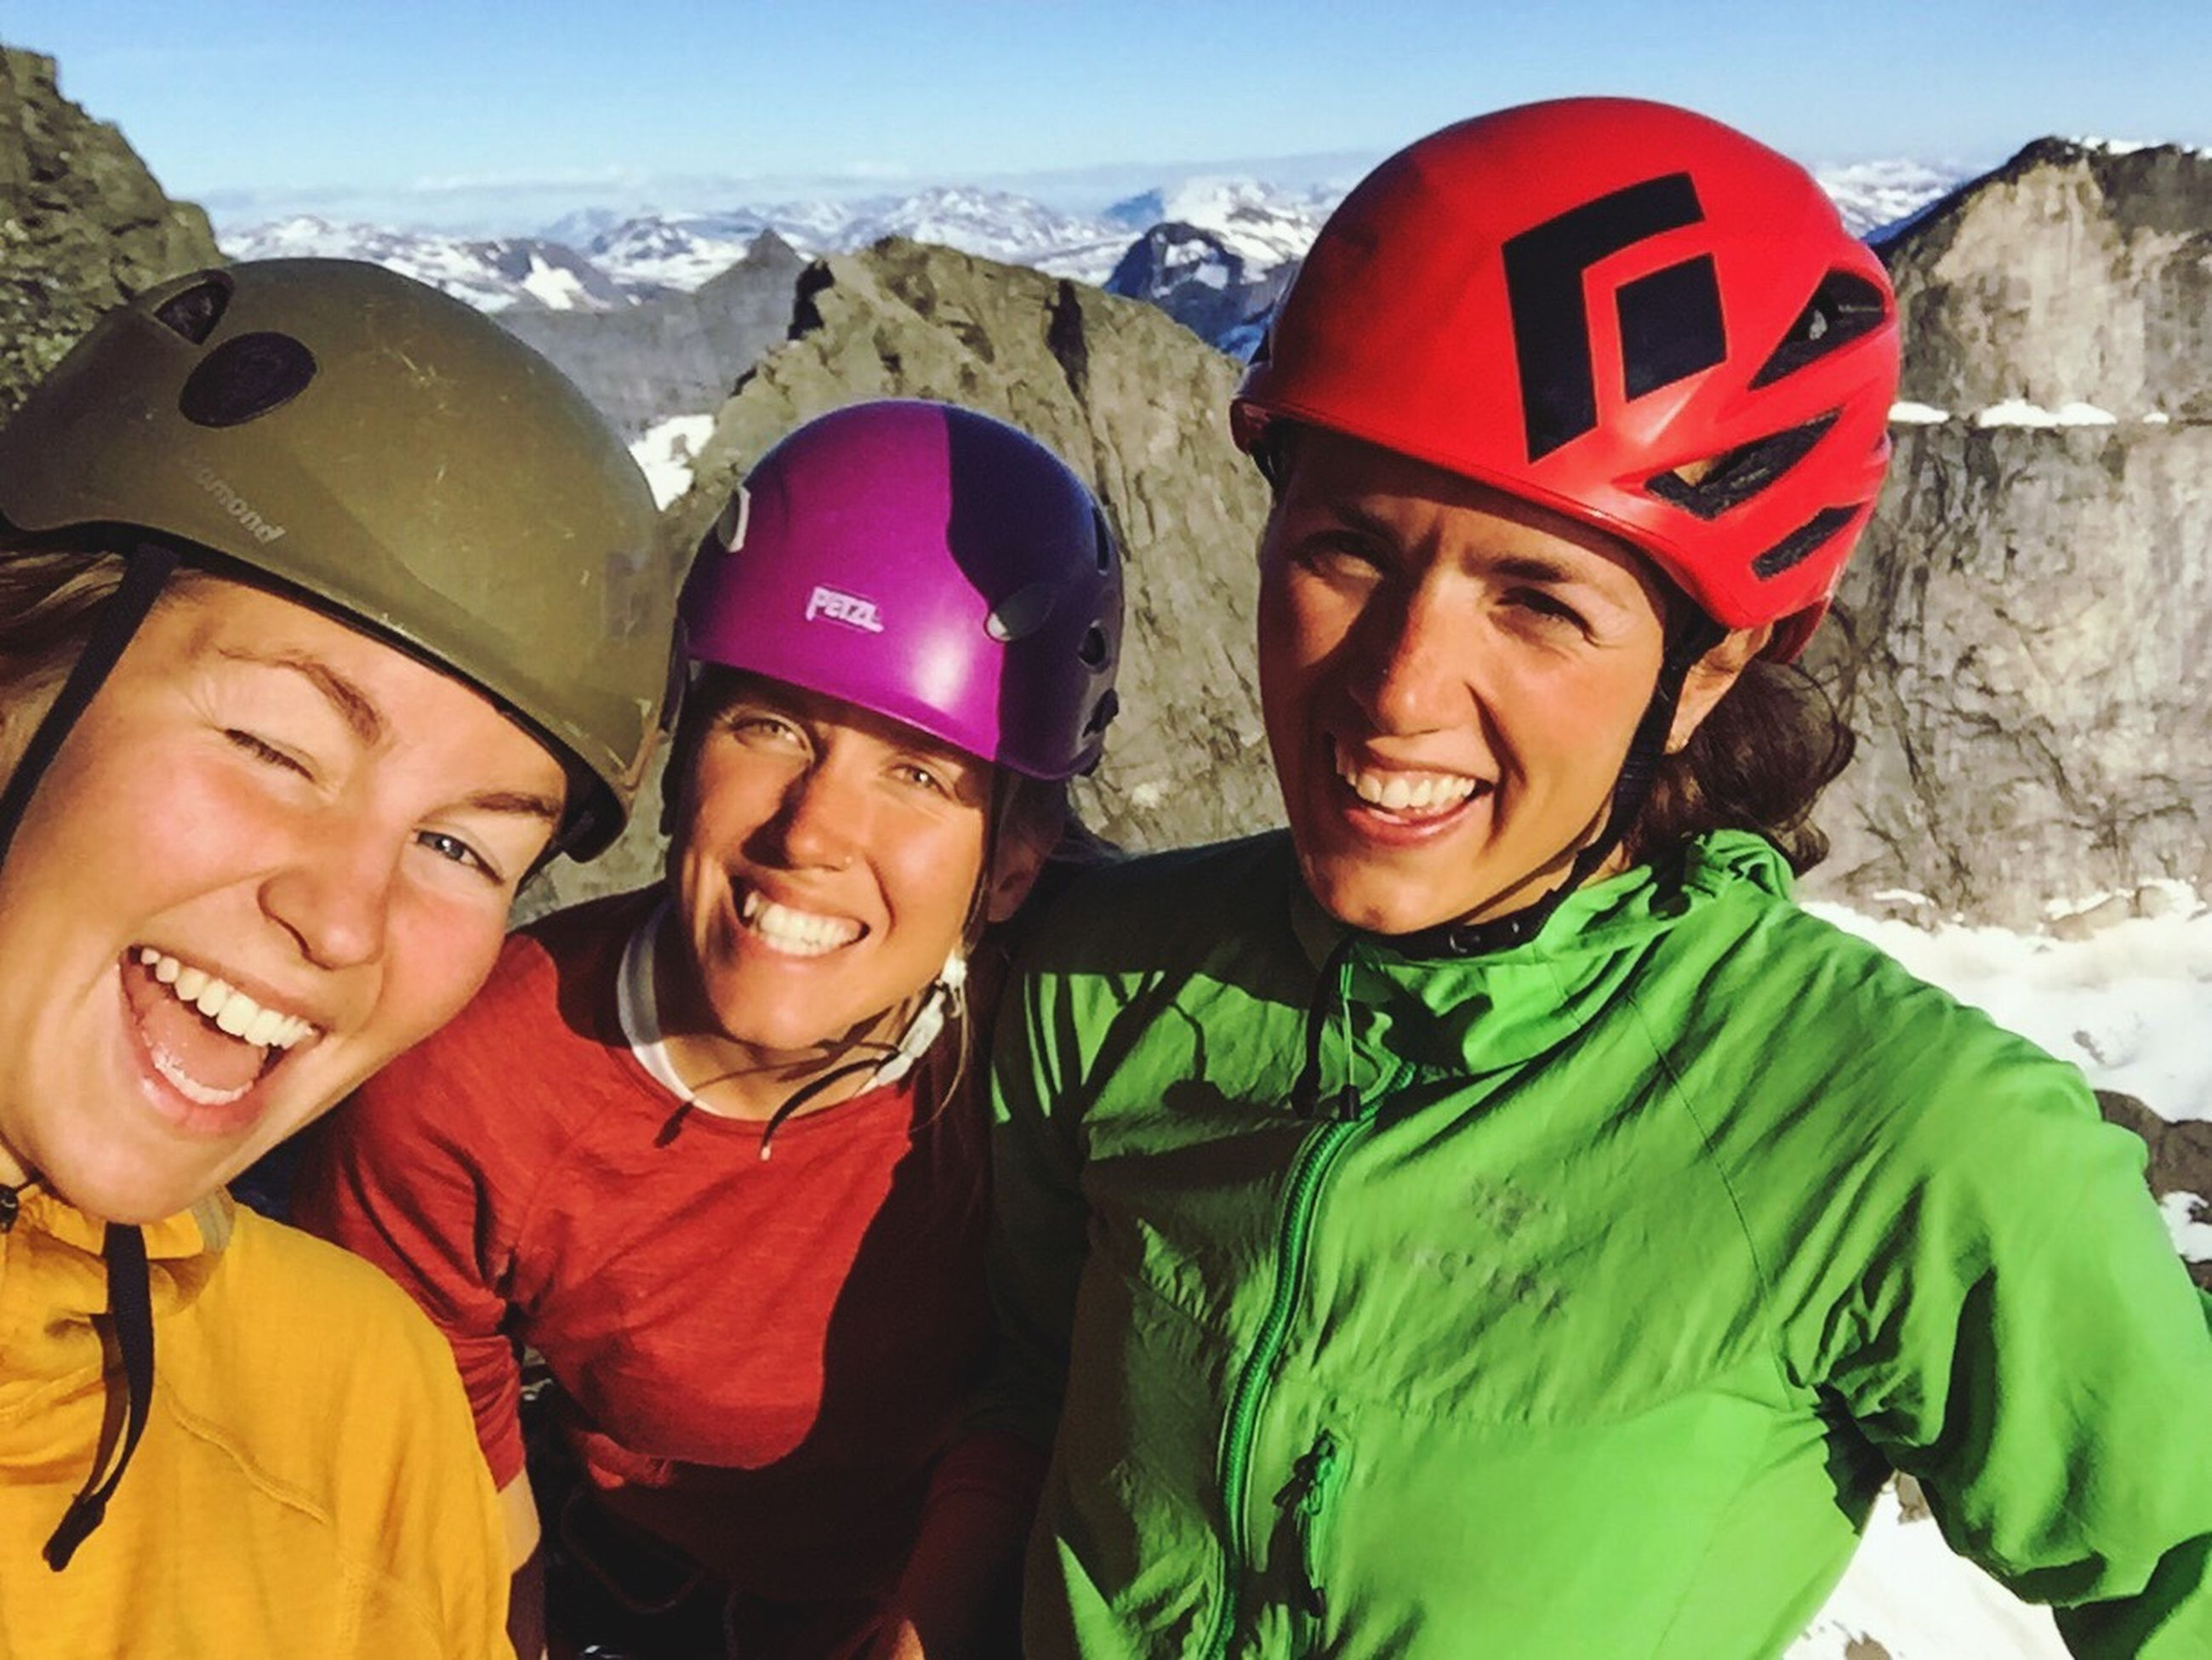 smiling, real people, leisure activity, happiness, togetherness, headwear, mountain, day, friendship, lifestyles, portrait, looking at camera, sports helmet, young women, outdoors, bonding, sport, cheerful, helmet, young adult, sports clothing, close-up, sky